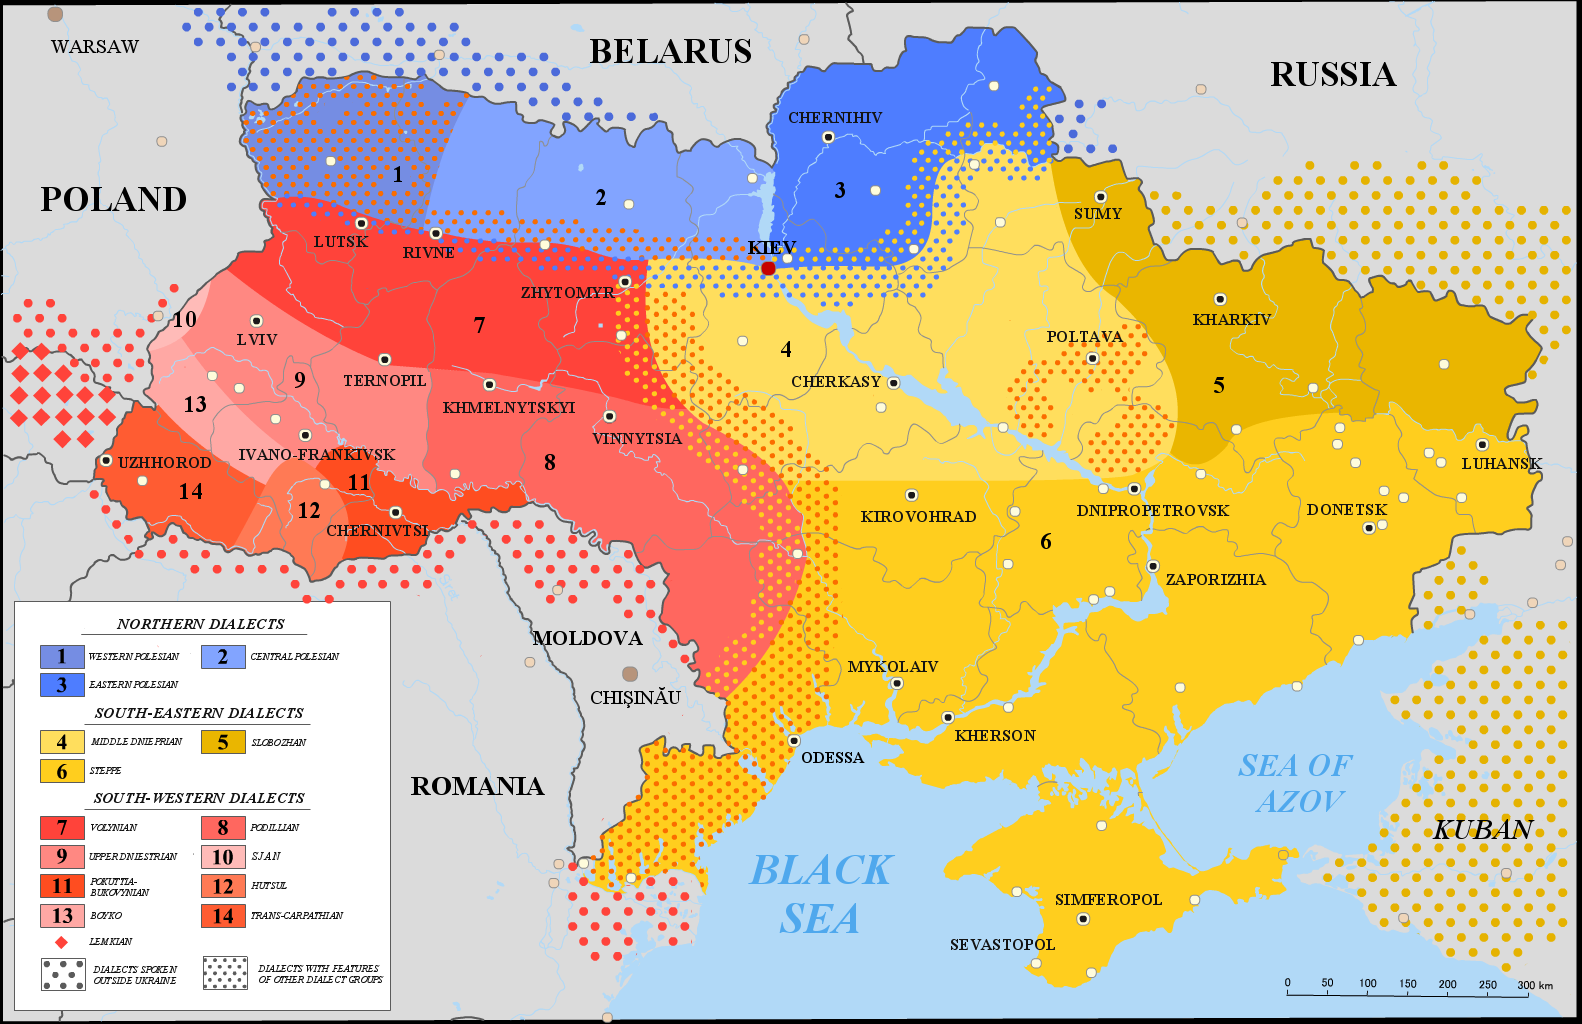 map_of_ukrainian_dialects_en-4175392